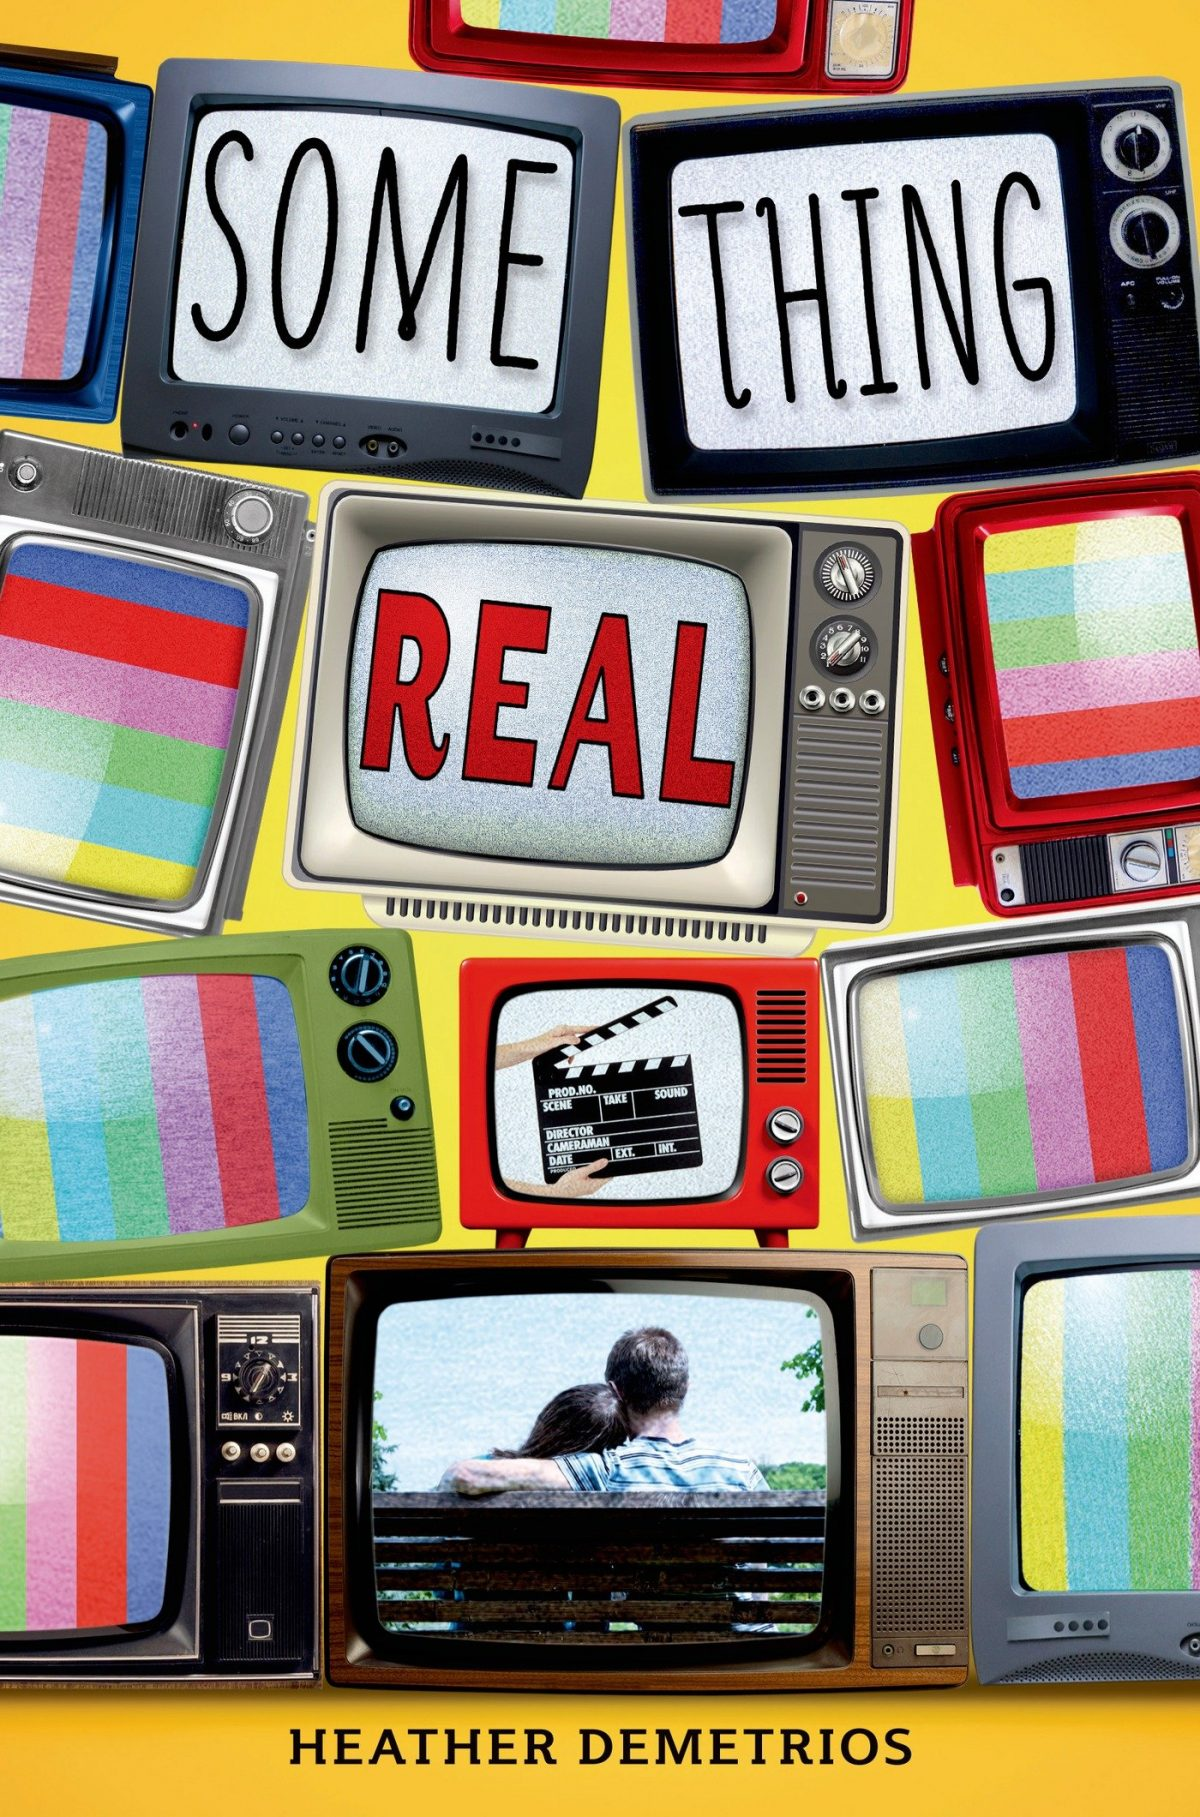 A pile of TVs, some with rainbow stripes, three with the title of the book, one with a director's slateboard clapper and one with a couple sitting on a bench, facing away from the camera and snuggling.